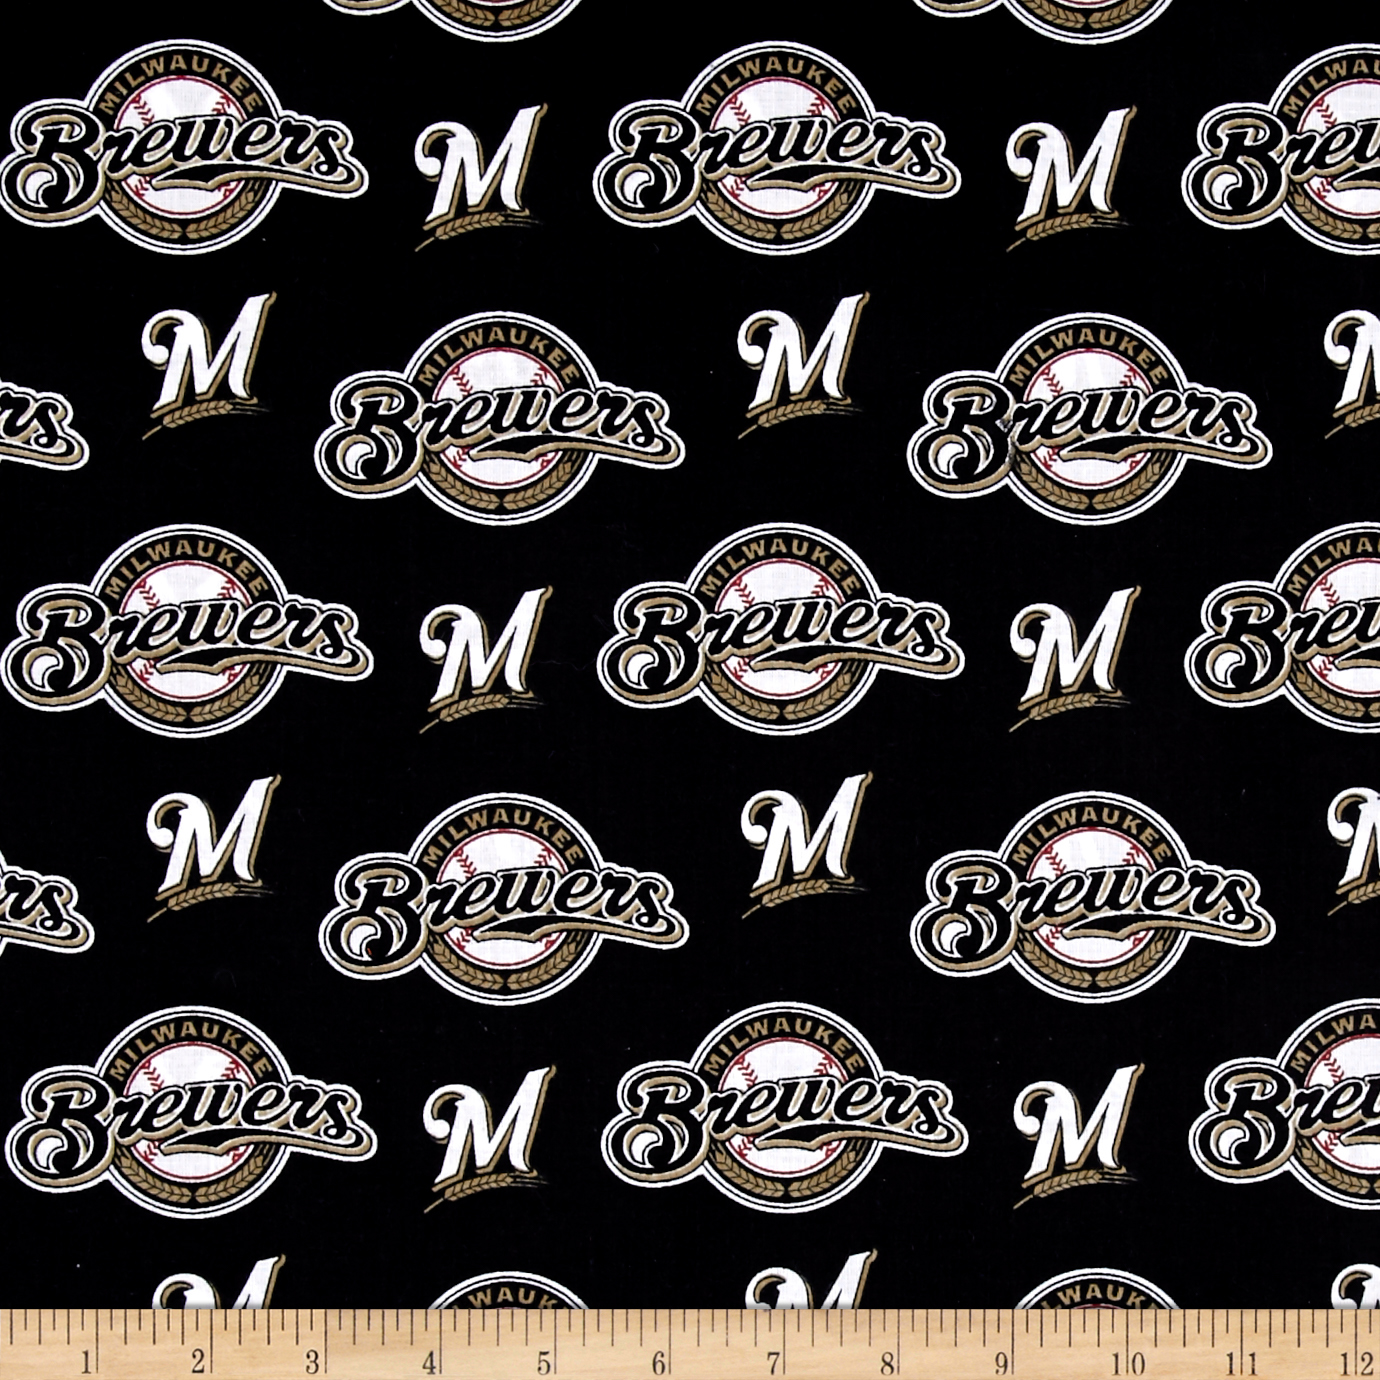 MLB Cotton Broadcloth Milwaukee Brewers Black/White Fabric by Fabric Traditions in USA